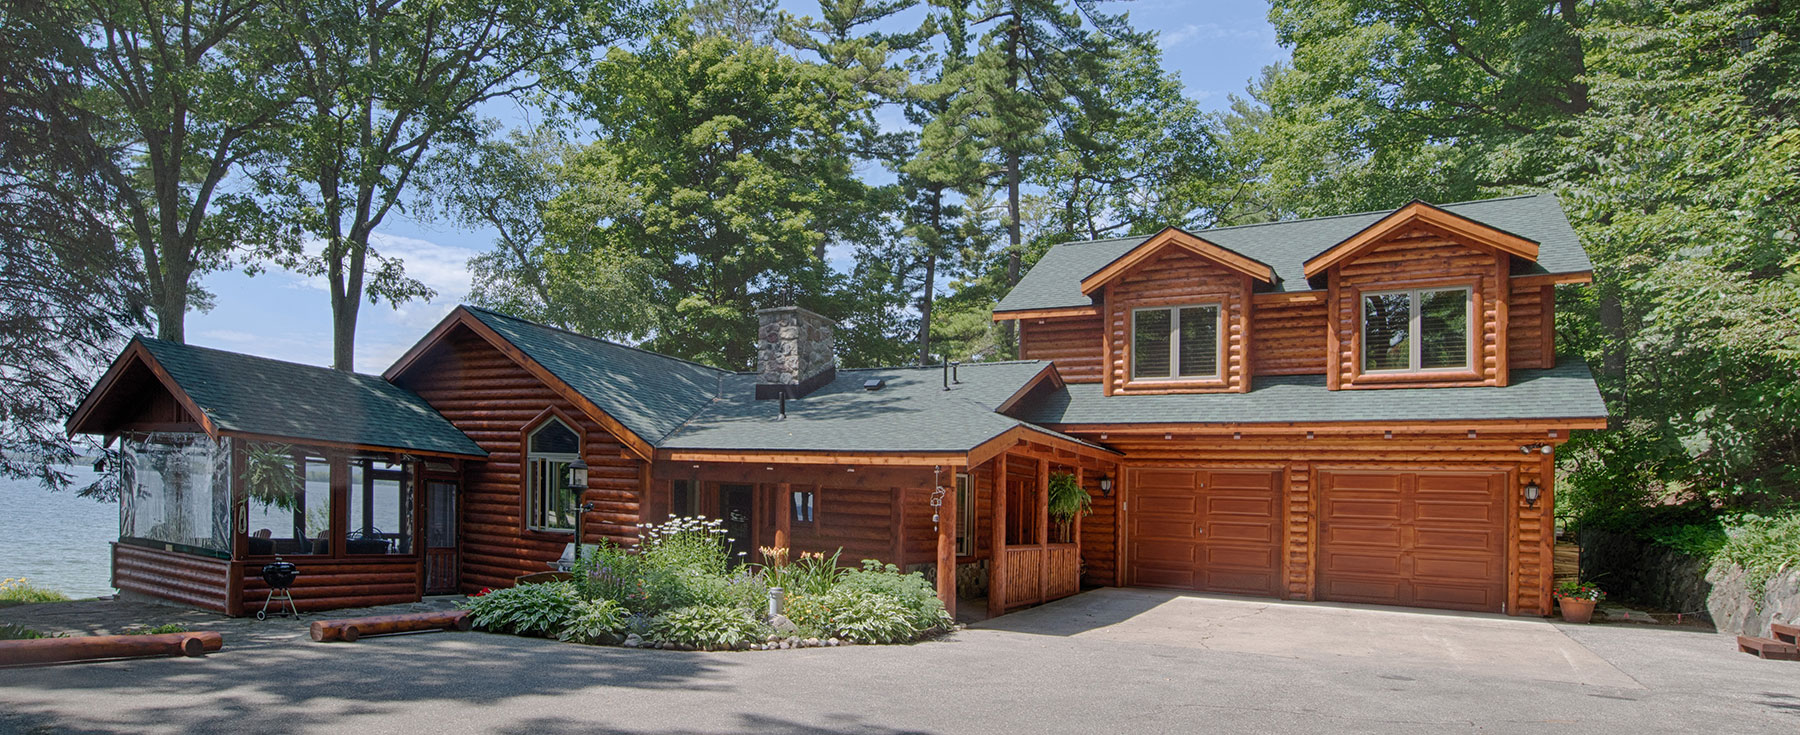 Burt Lake Home Log Exterior Remodel Addition